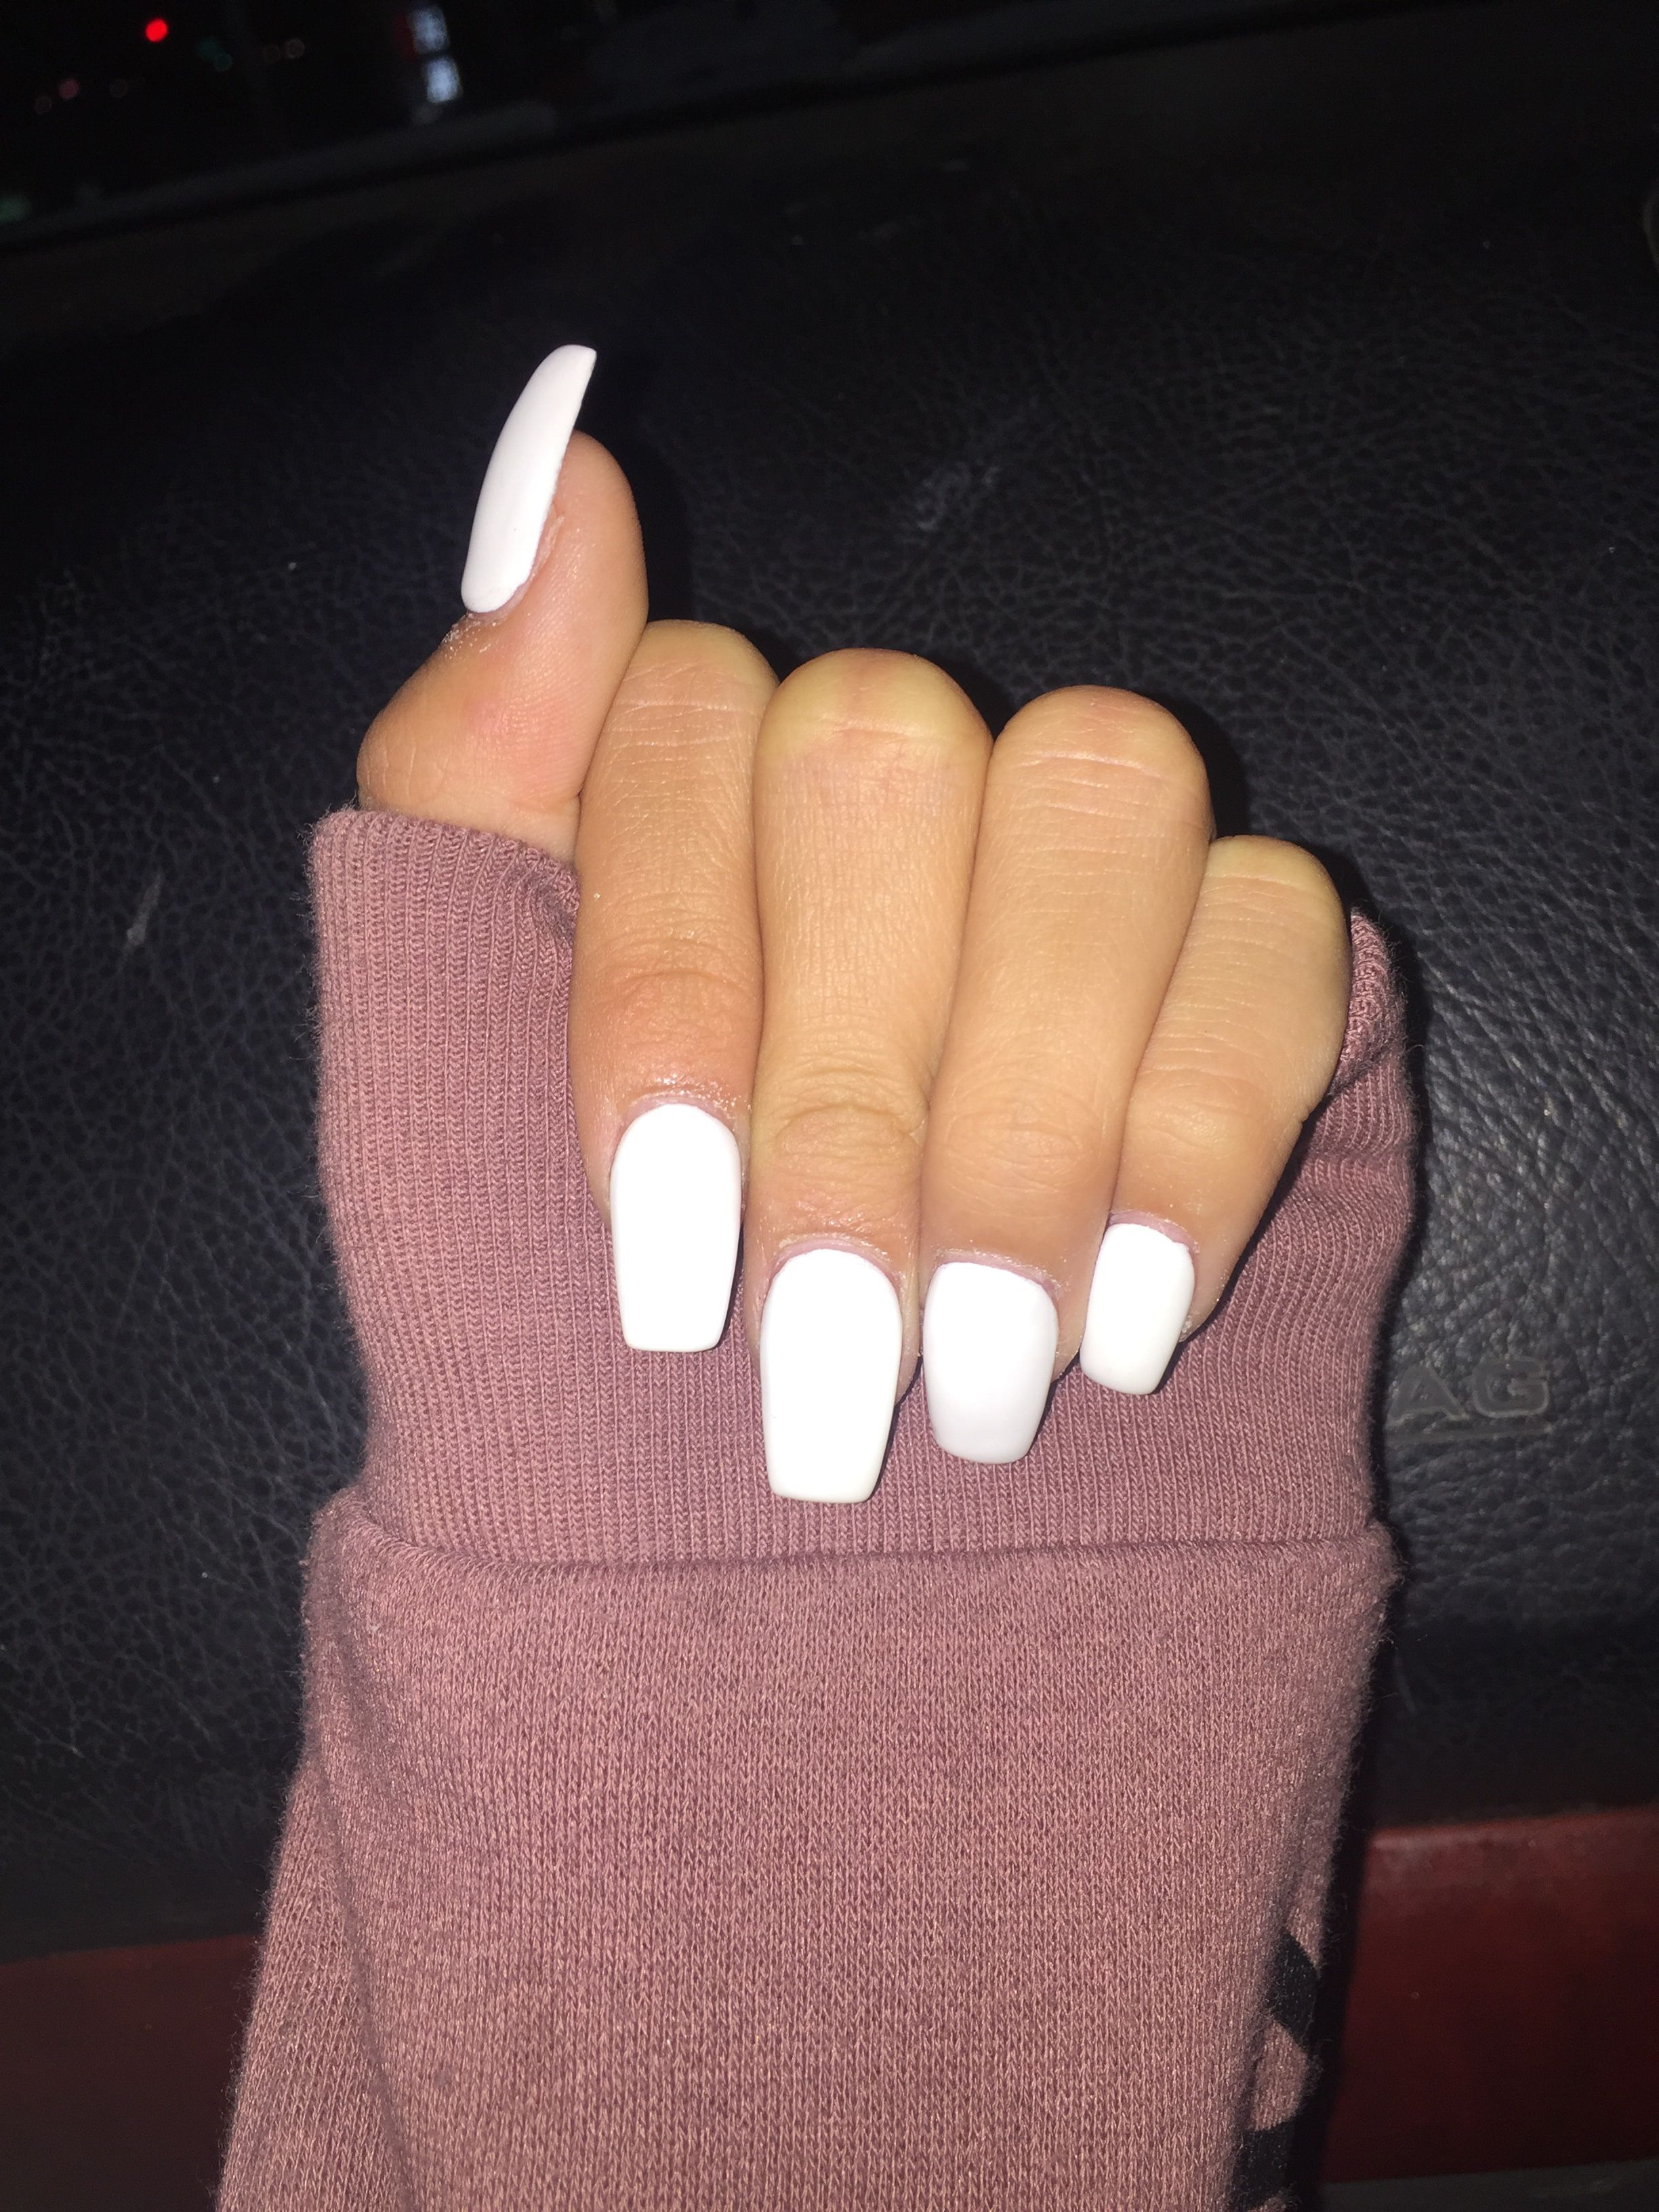 Cute White Acrylics But Asked For Coffin Shaped But They Kinda Looked Square But Still Love Them Nagels Gelnagels Acrylnagels